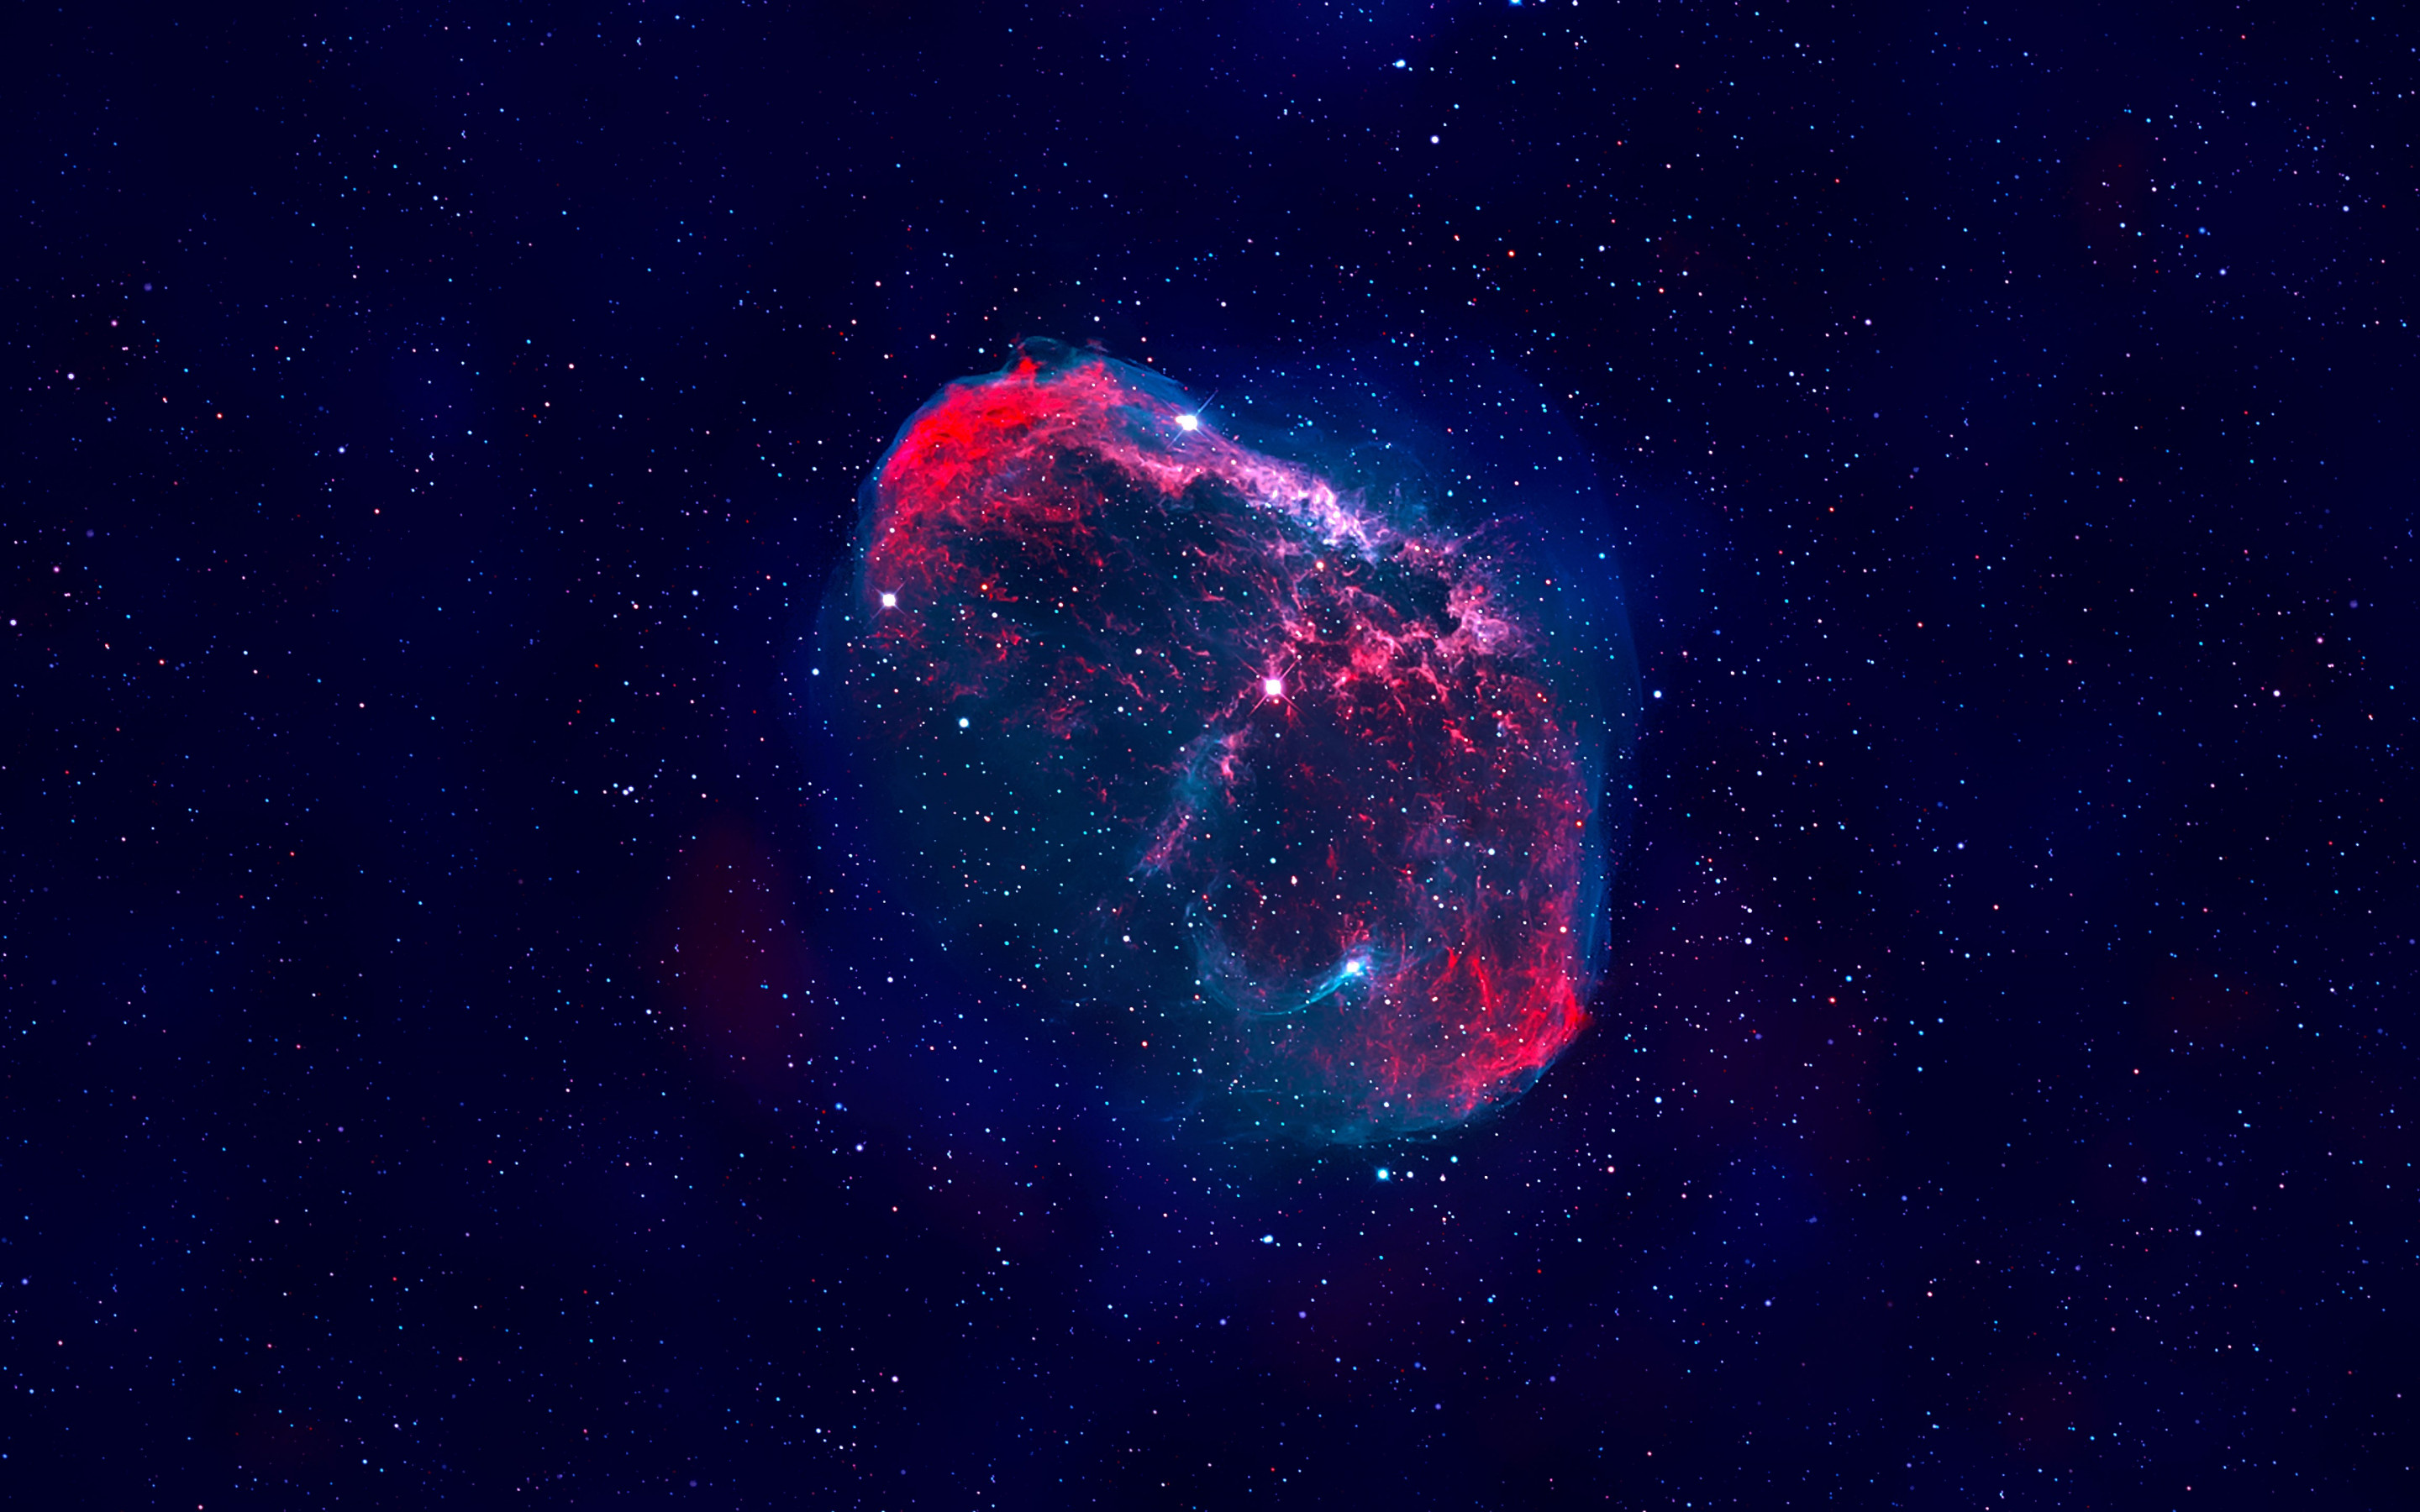 The Crescent nebula wallpaper 2880x1800